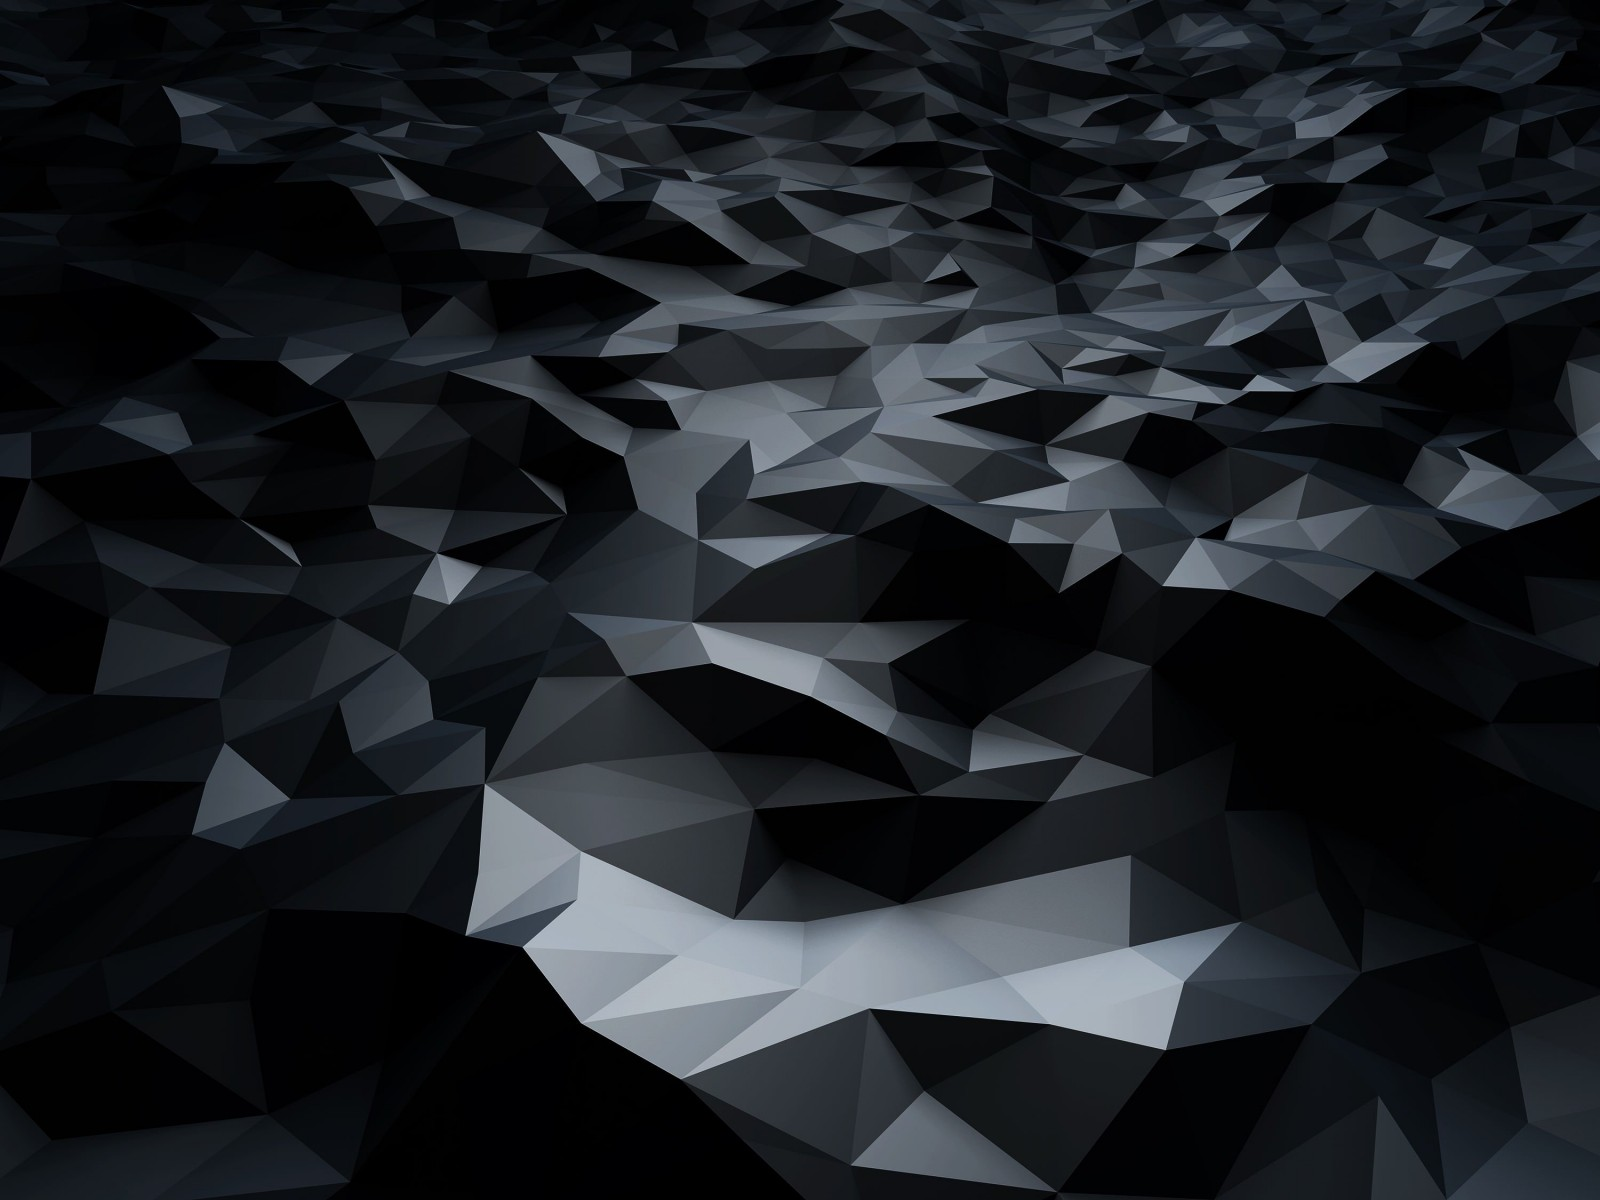 Abstract Black Low Poly Wallpaper for Desktop 1600x1200